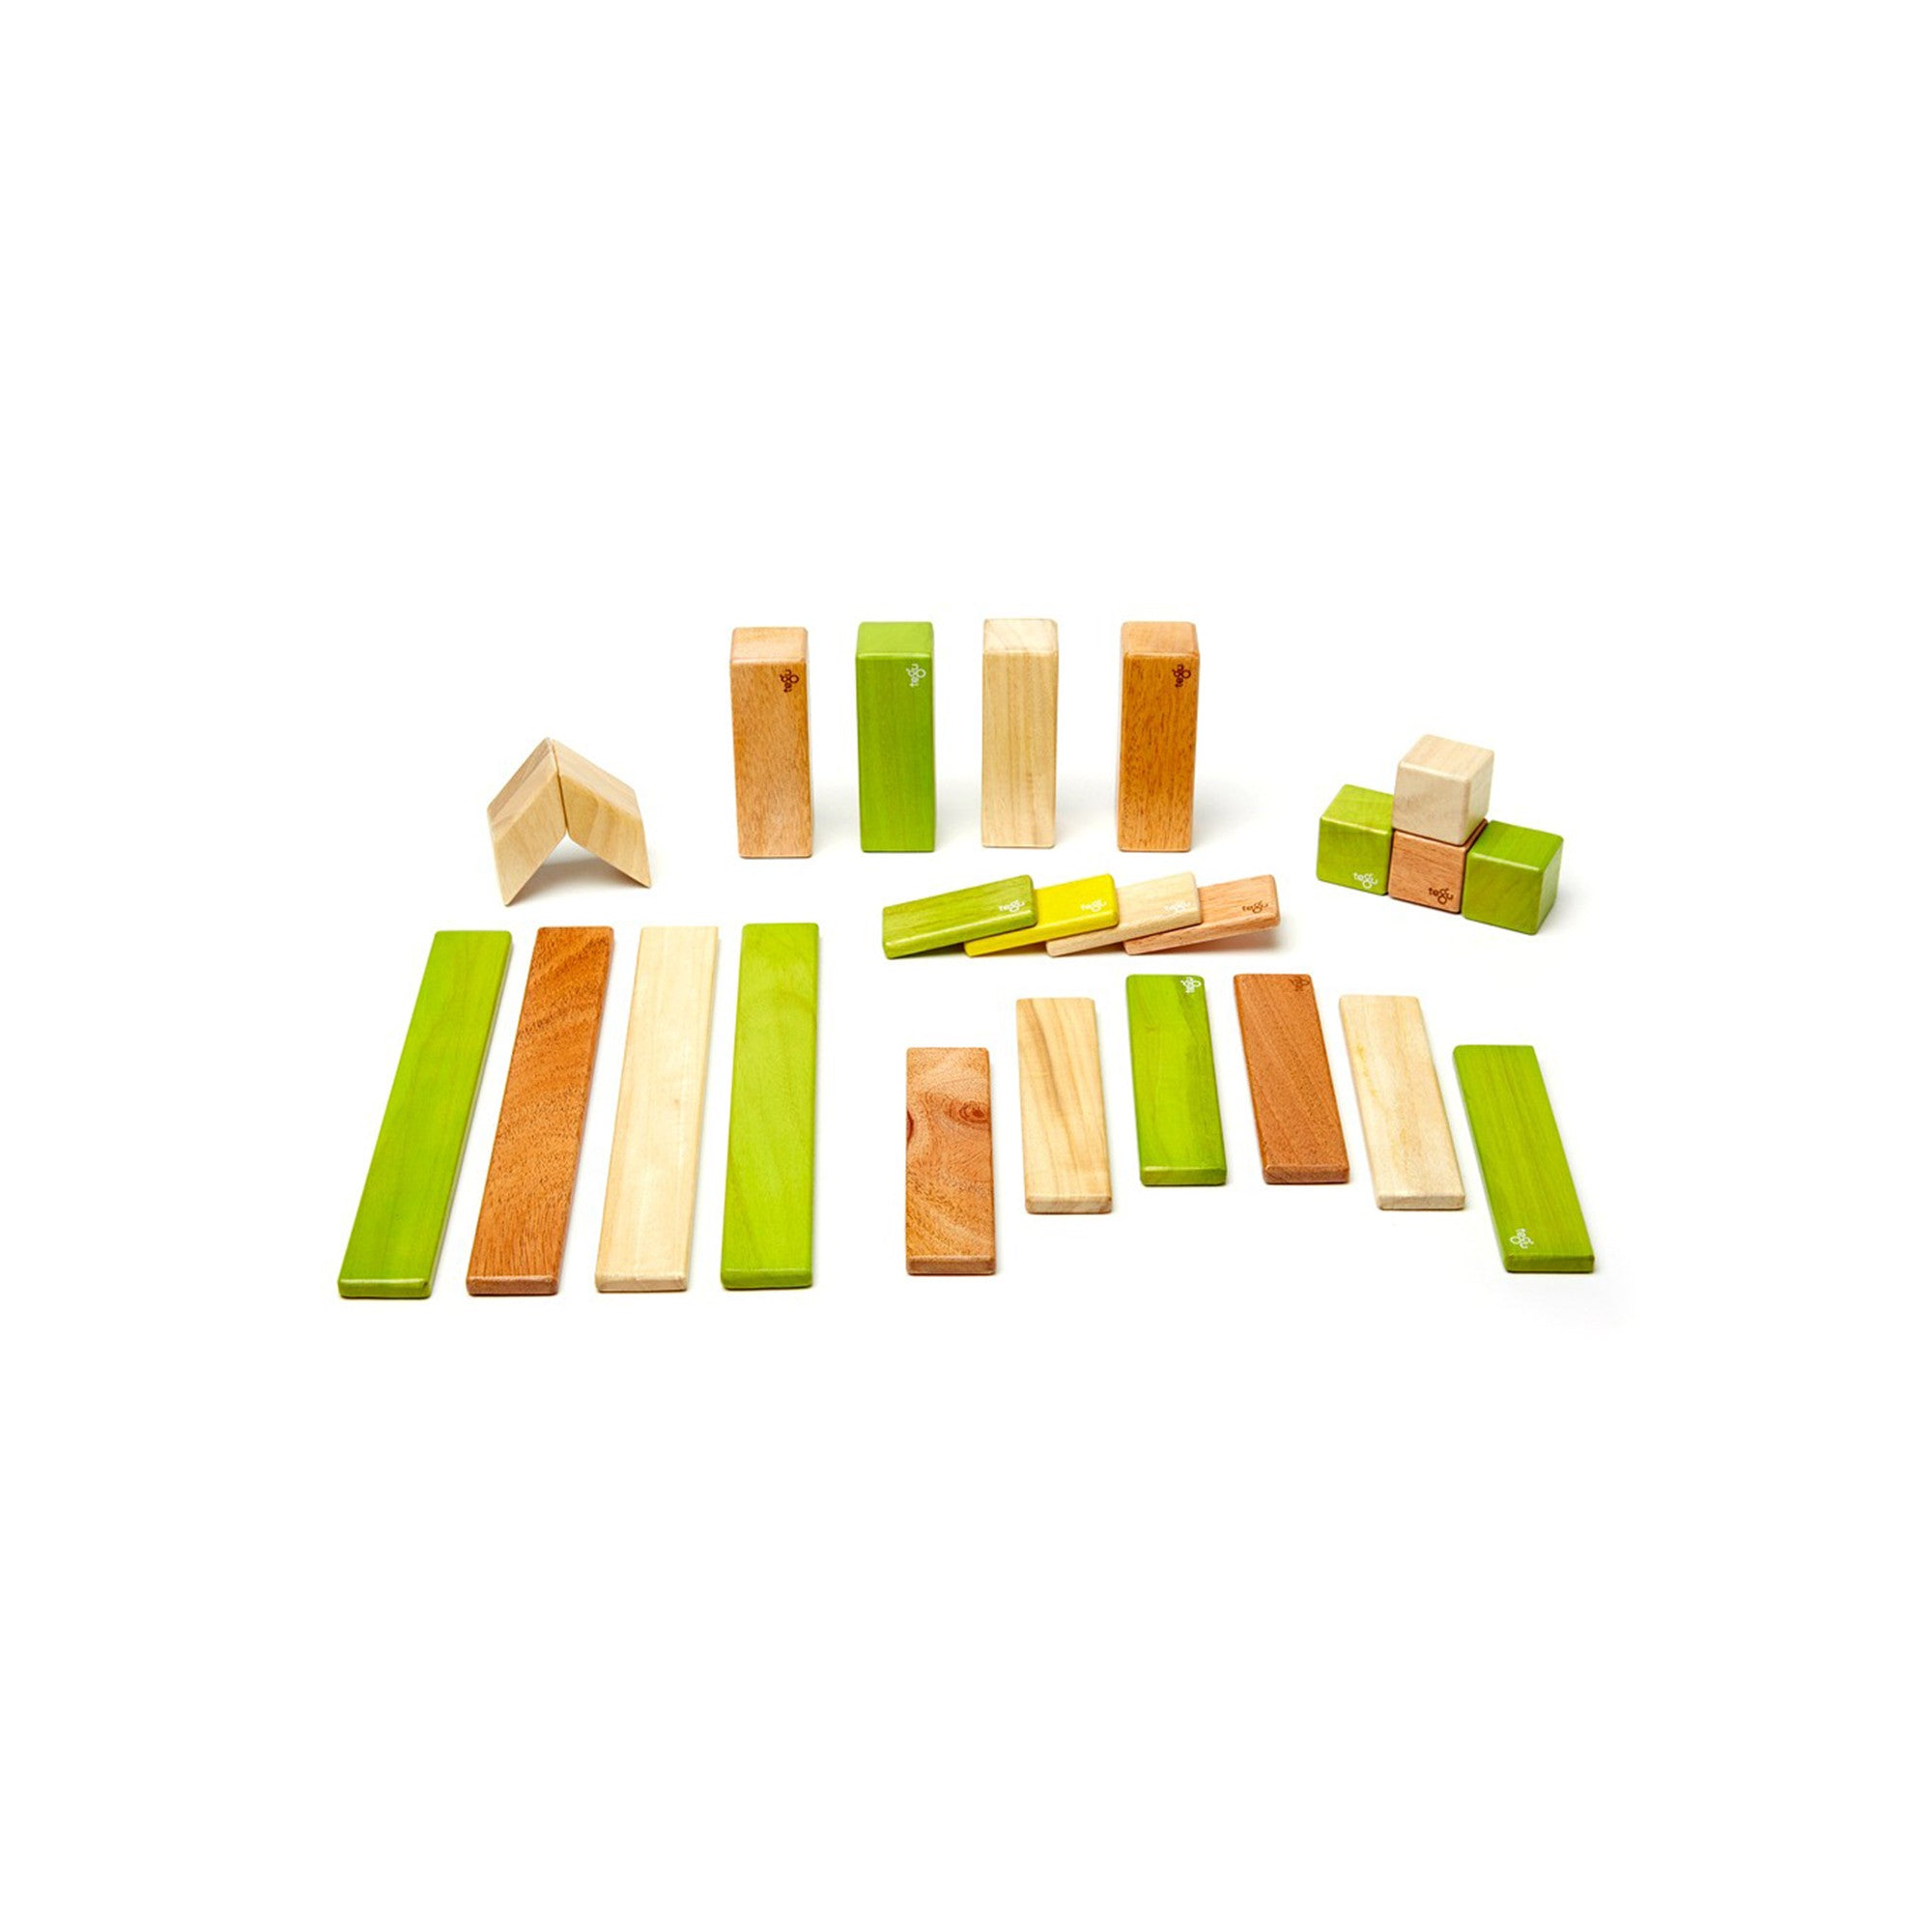 Tegu 24 Piece Set Magnetic Block Set Tegu Magnet Toys Jungle at Little Earth Nest Eco Shop